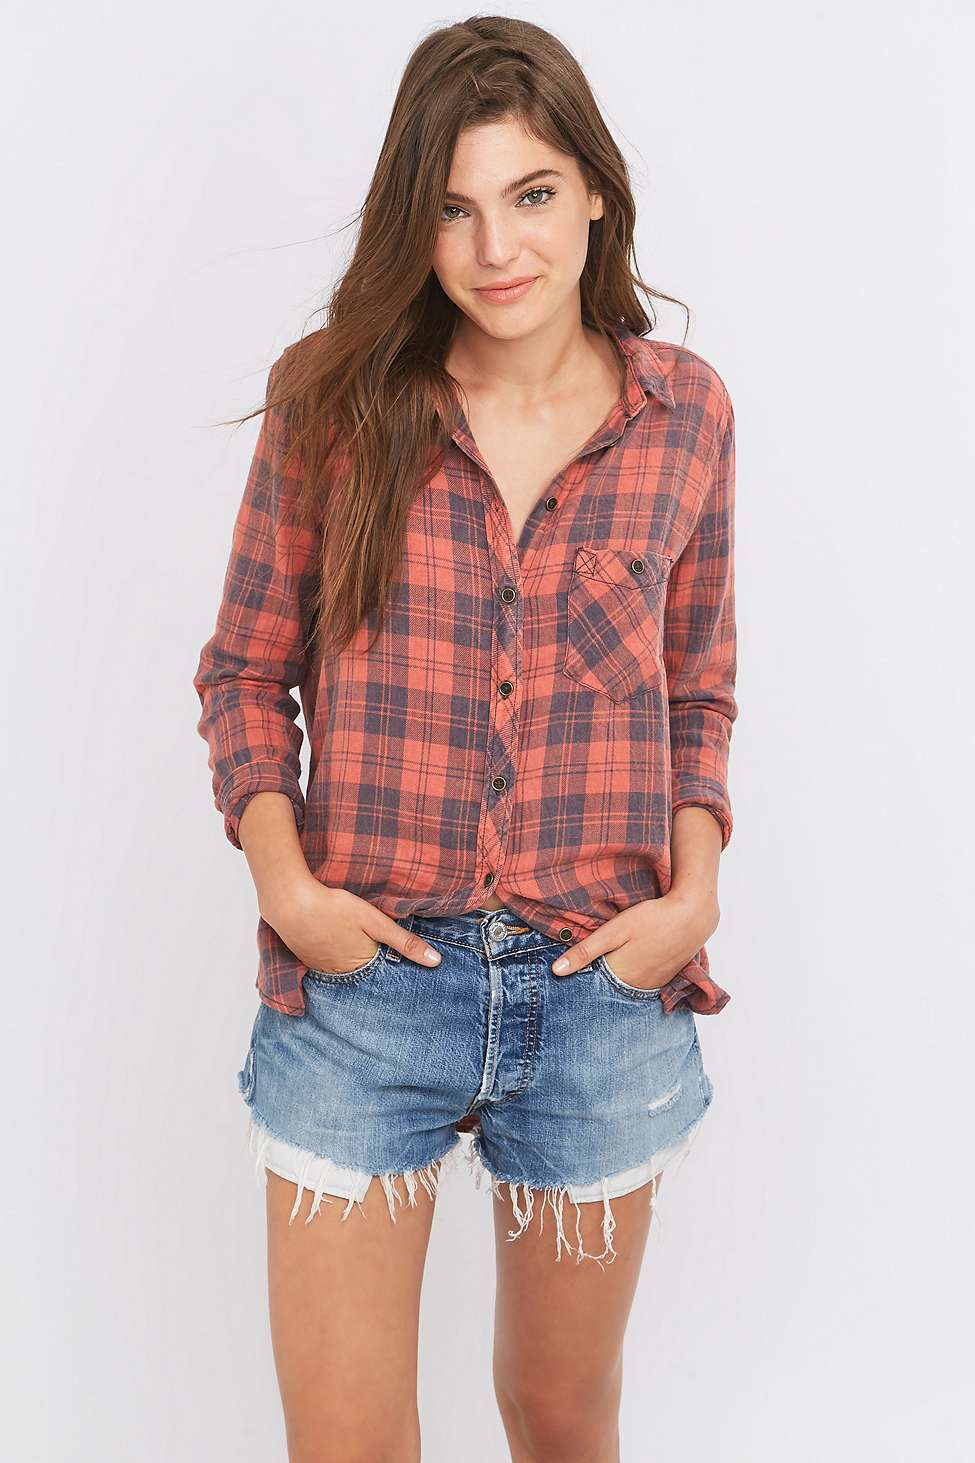 Lyst Bdg Polly Flannel Button down Shirt in Red